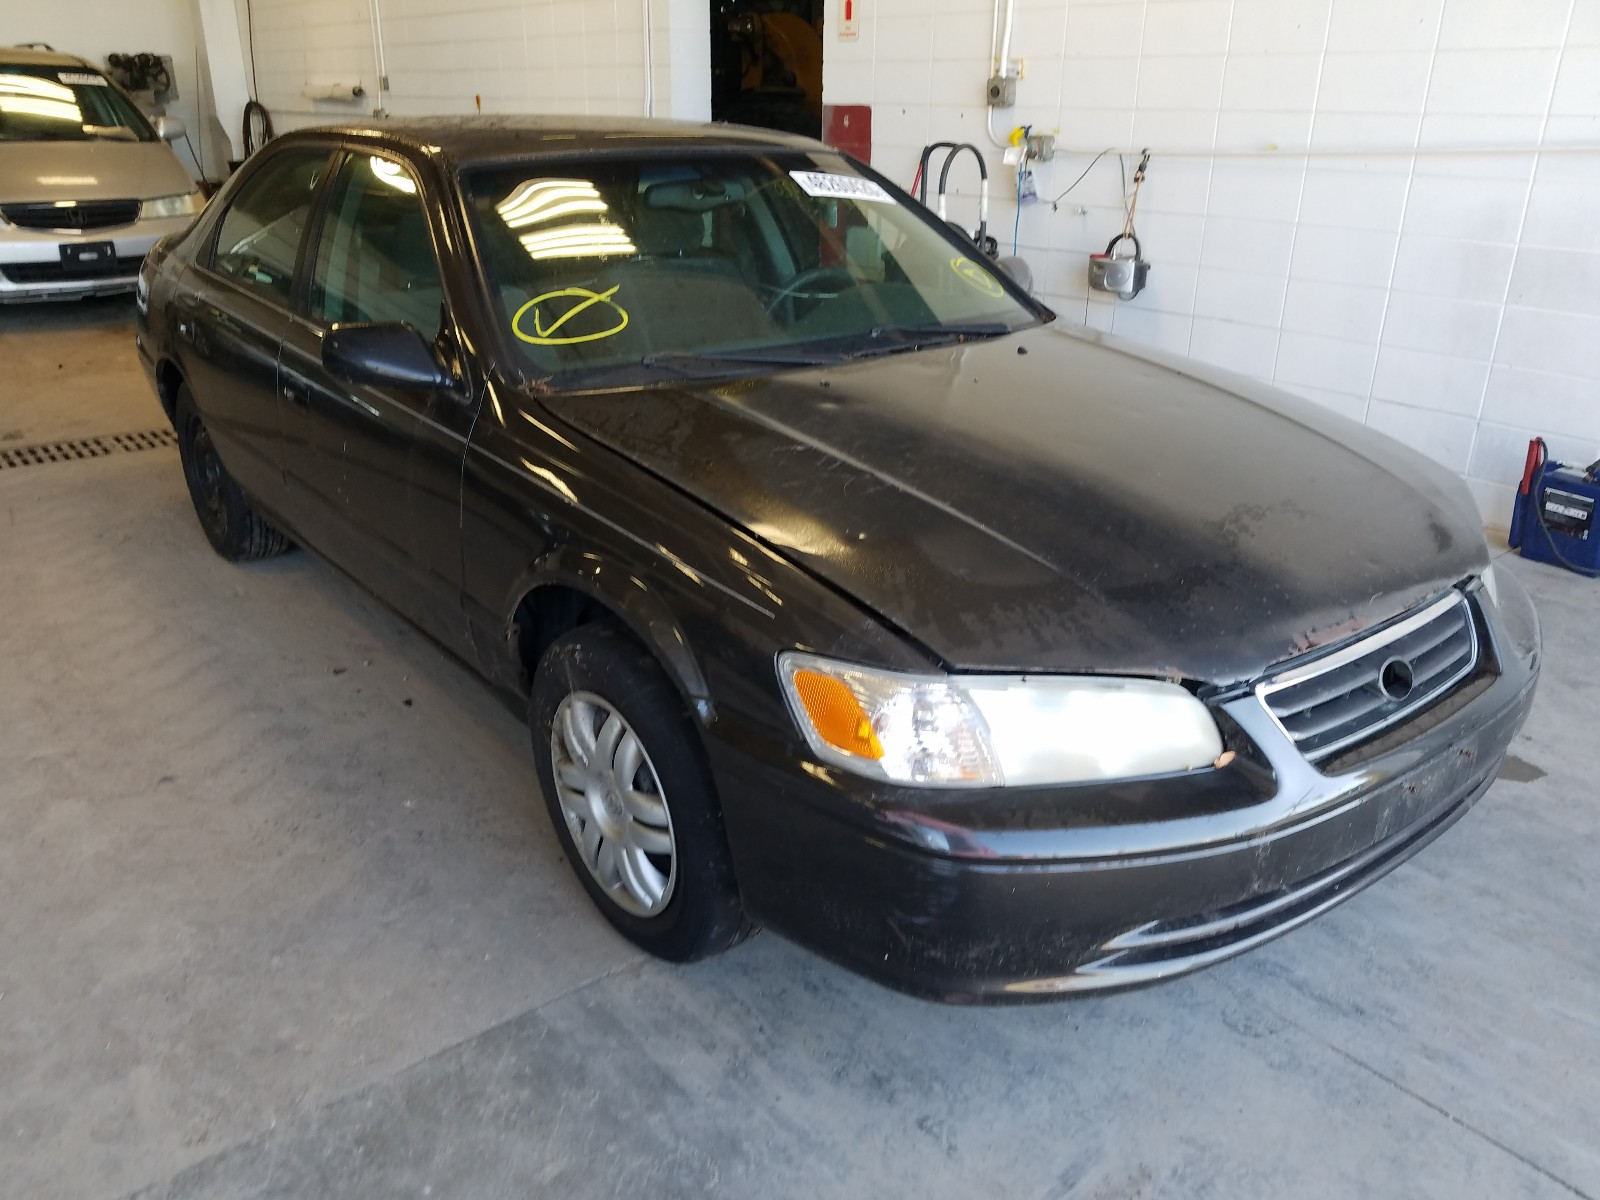 2000 toyota camry ce for sale at copart blaine mn lot 46260420 salvagereseller com salvagereseller com